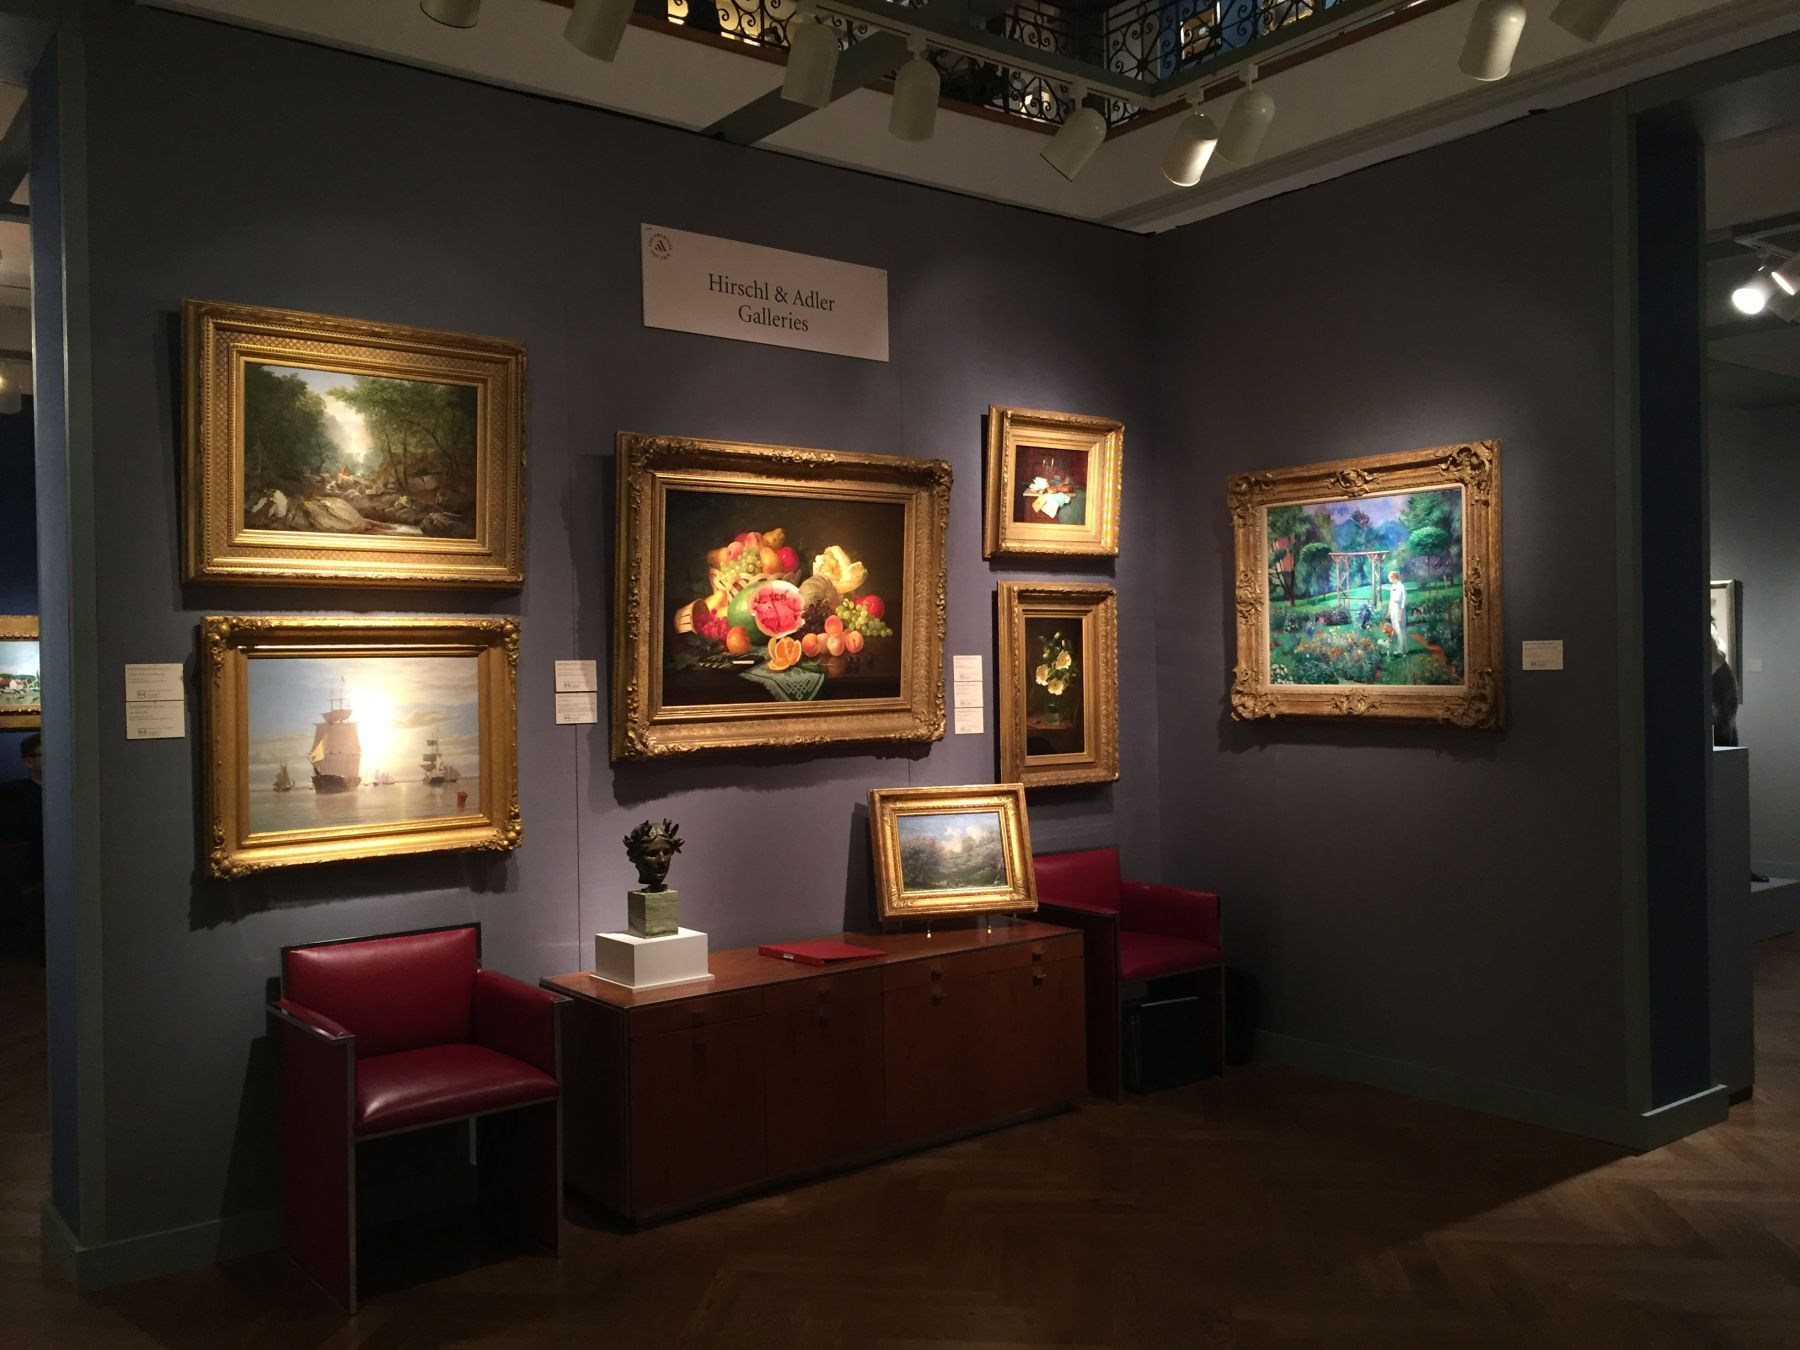 The American Art Fair 2016